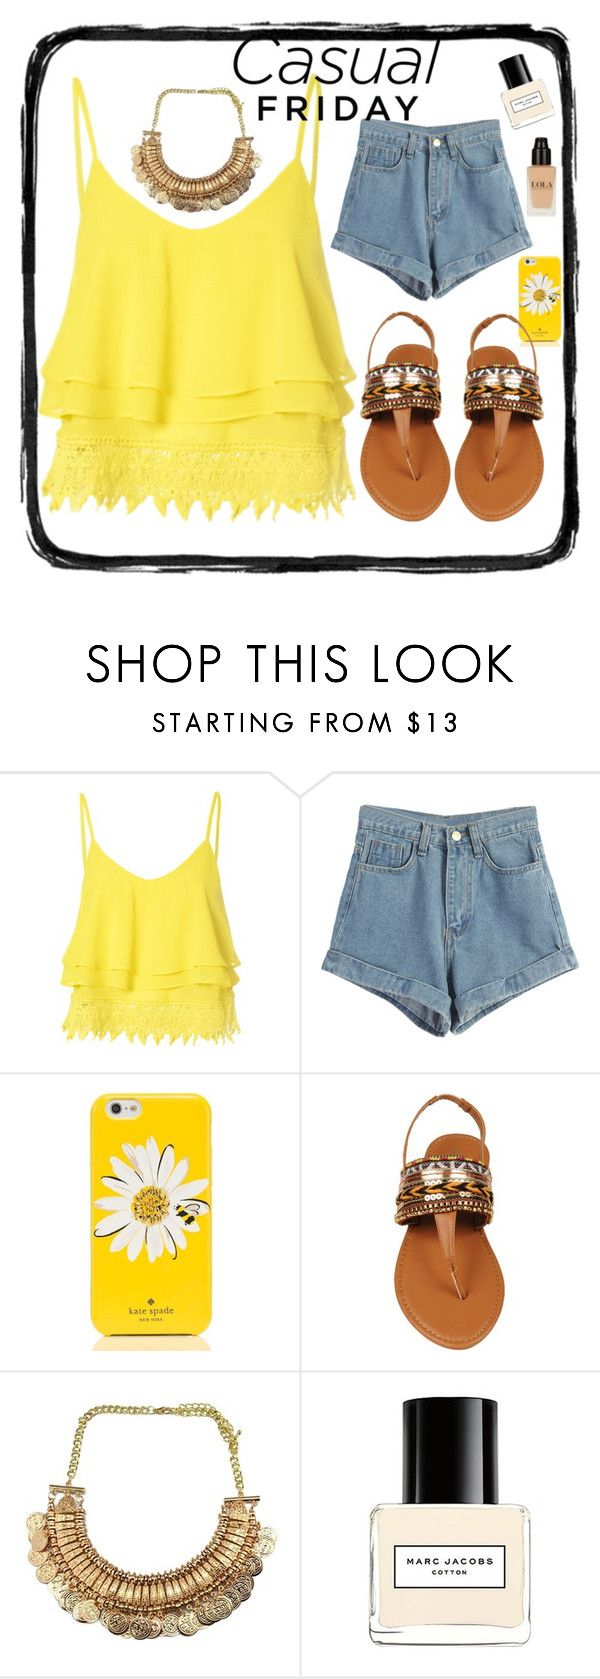 """""""casual friday 2"""" by camilazeballo on Polyvore featuring moda, Glamorous, WithChic, Kate Spade, Black Rivet y Marc Jacobs"""